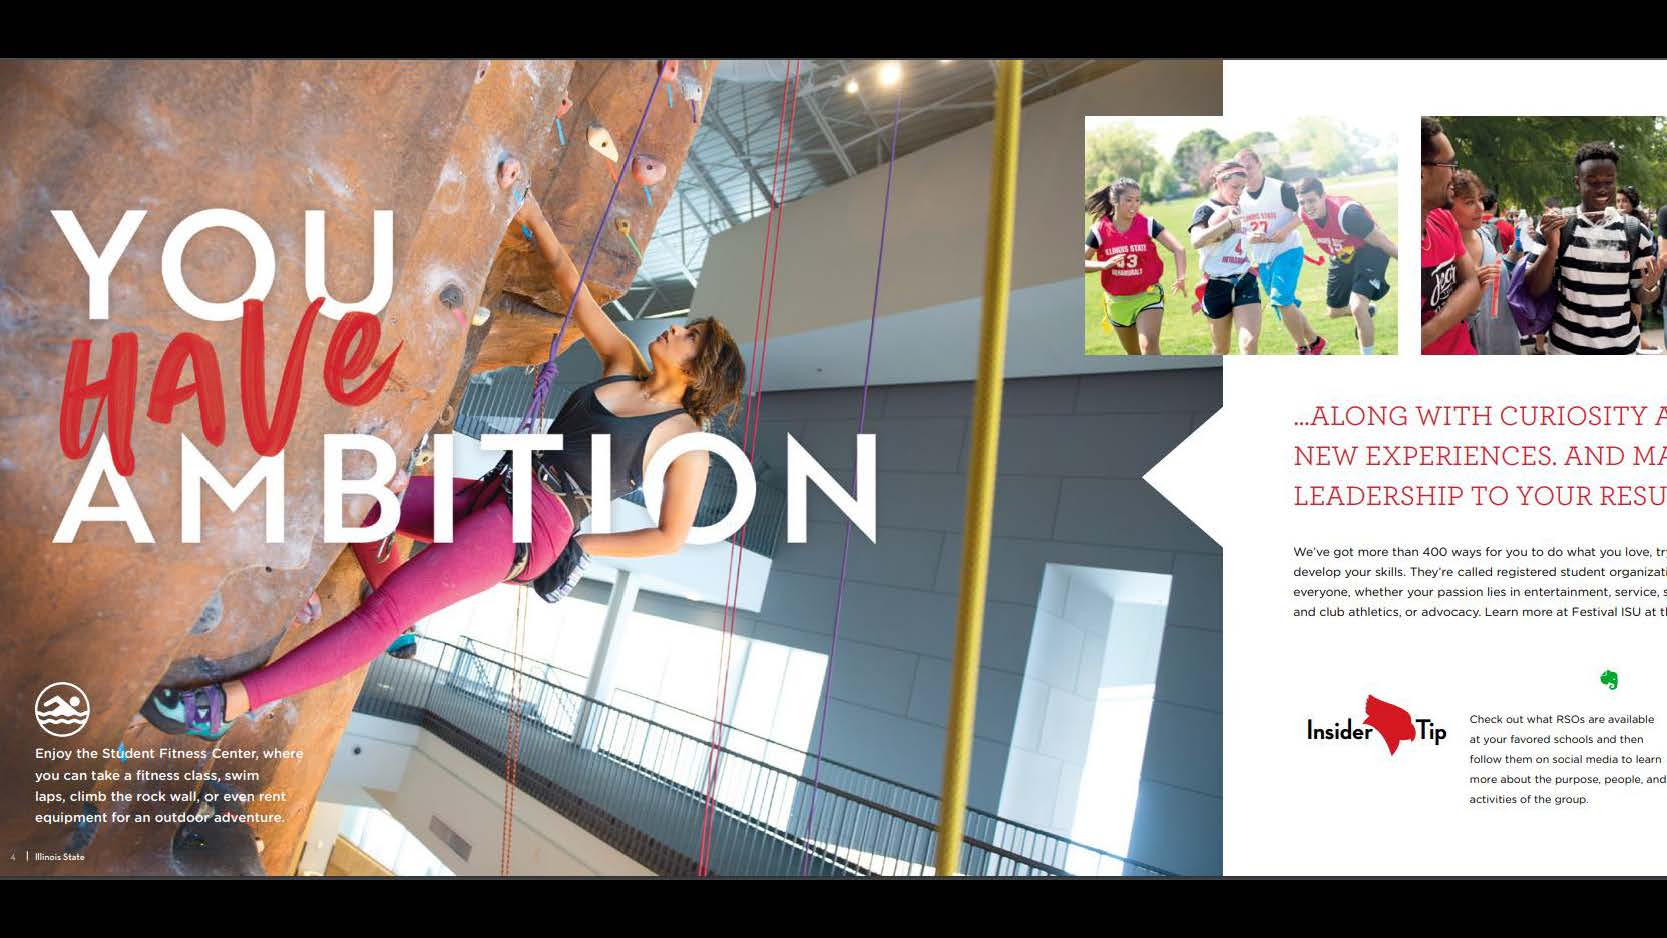 Publications, Student Recruitment-Individual Publication (Gold): Illinois State University Viewbook 2020 designed by Michael Mahle and Evan Walles and with photography by Lyndsie Schlink for the Office of Admissions. You have ambition